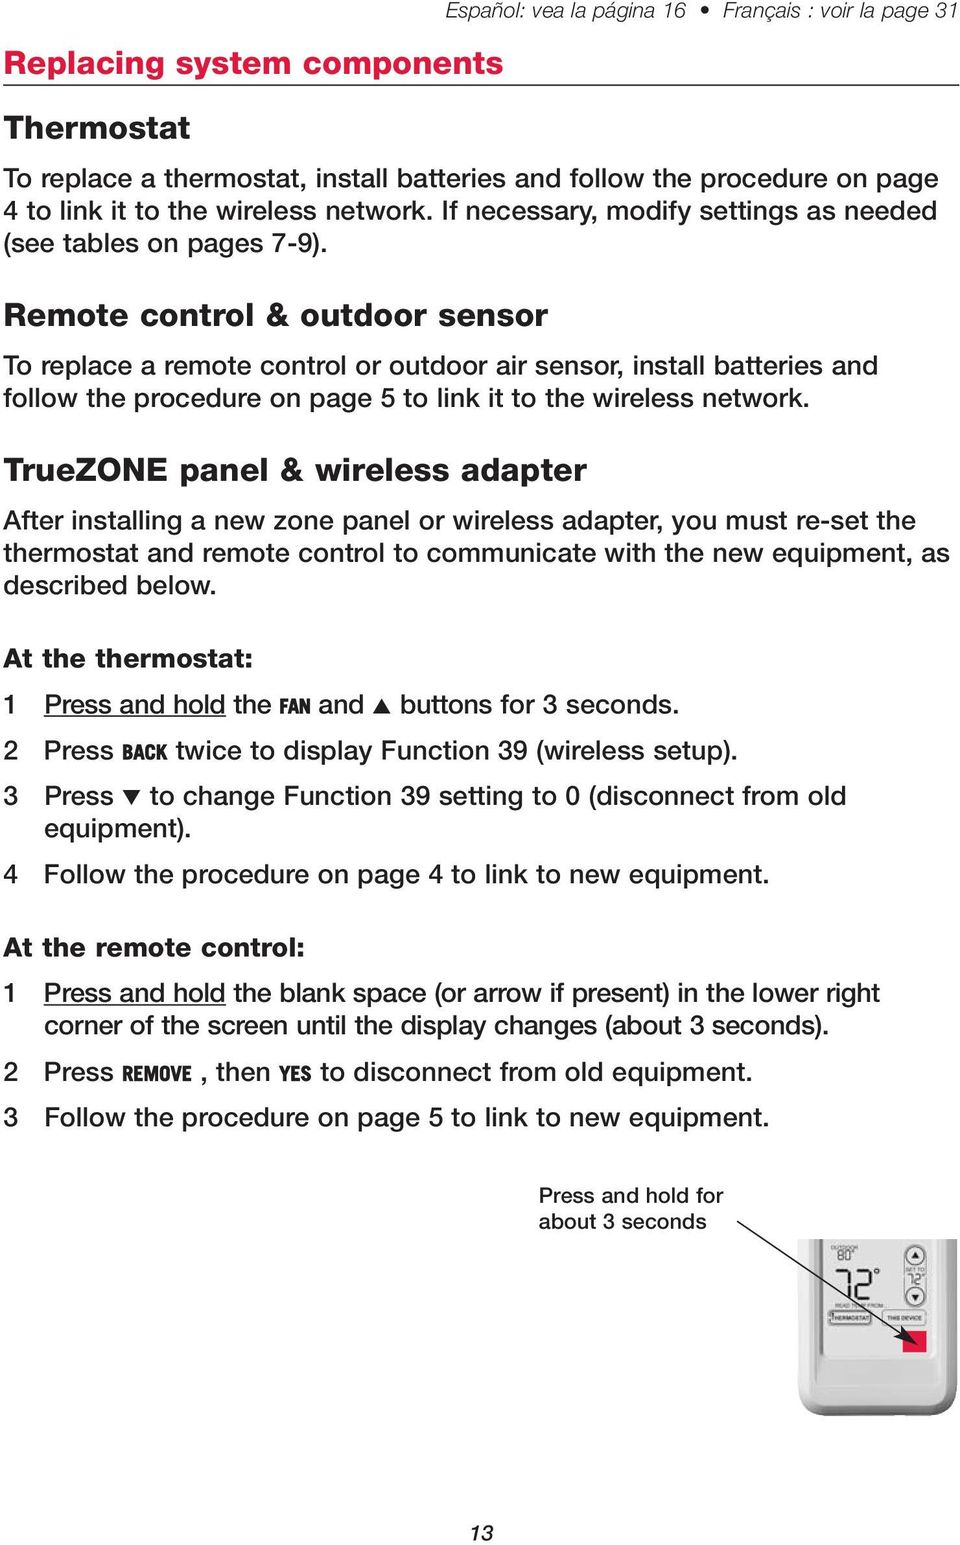 Remote control & outdoor sensor To replace a remote control or outdoor air sensor, install batteries and follow the procedure on page 5 to link it to the wireless network.